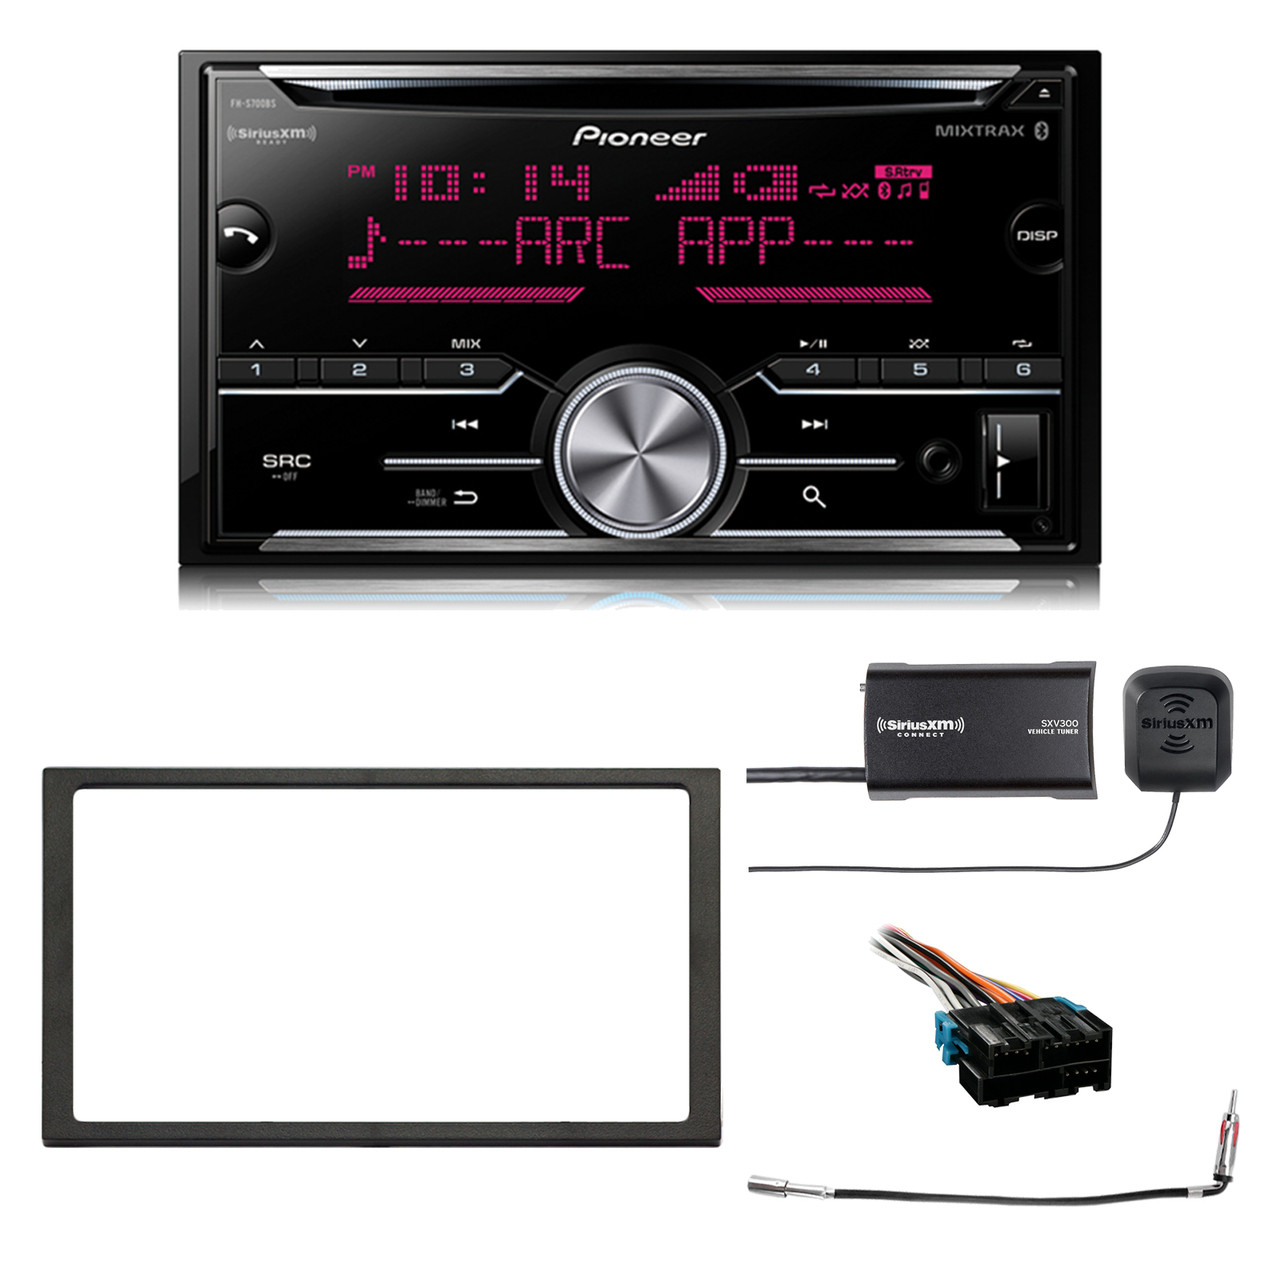 medium resolution of pioneer double din cd mixtrax bluetooth siriusxm ready receiver enrock 2 din install dash kit metra radio wiring harness antenna adapter